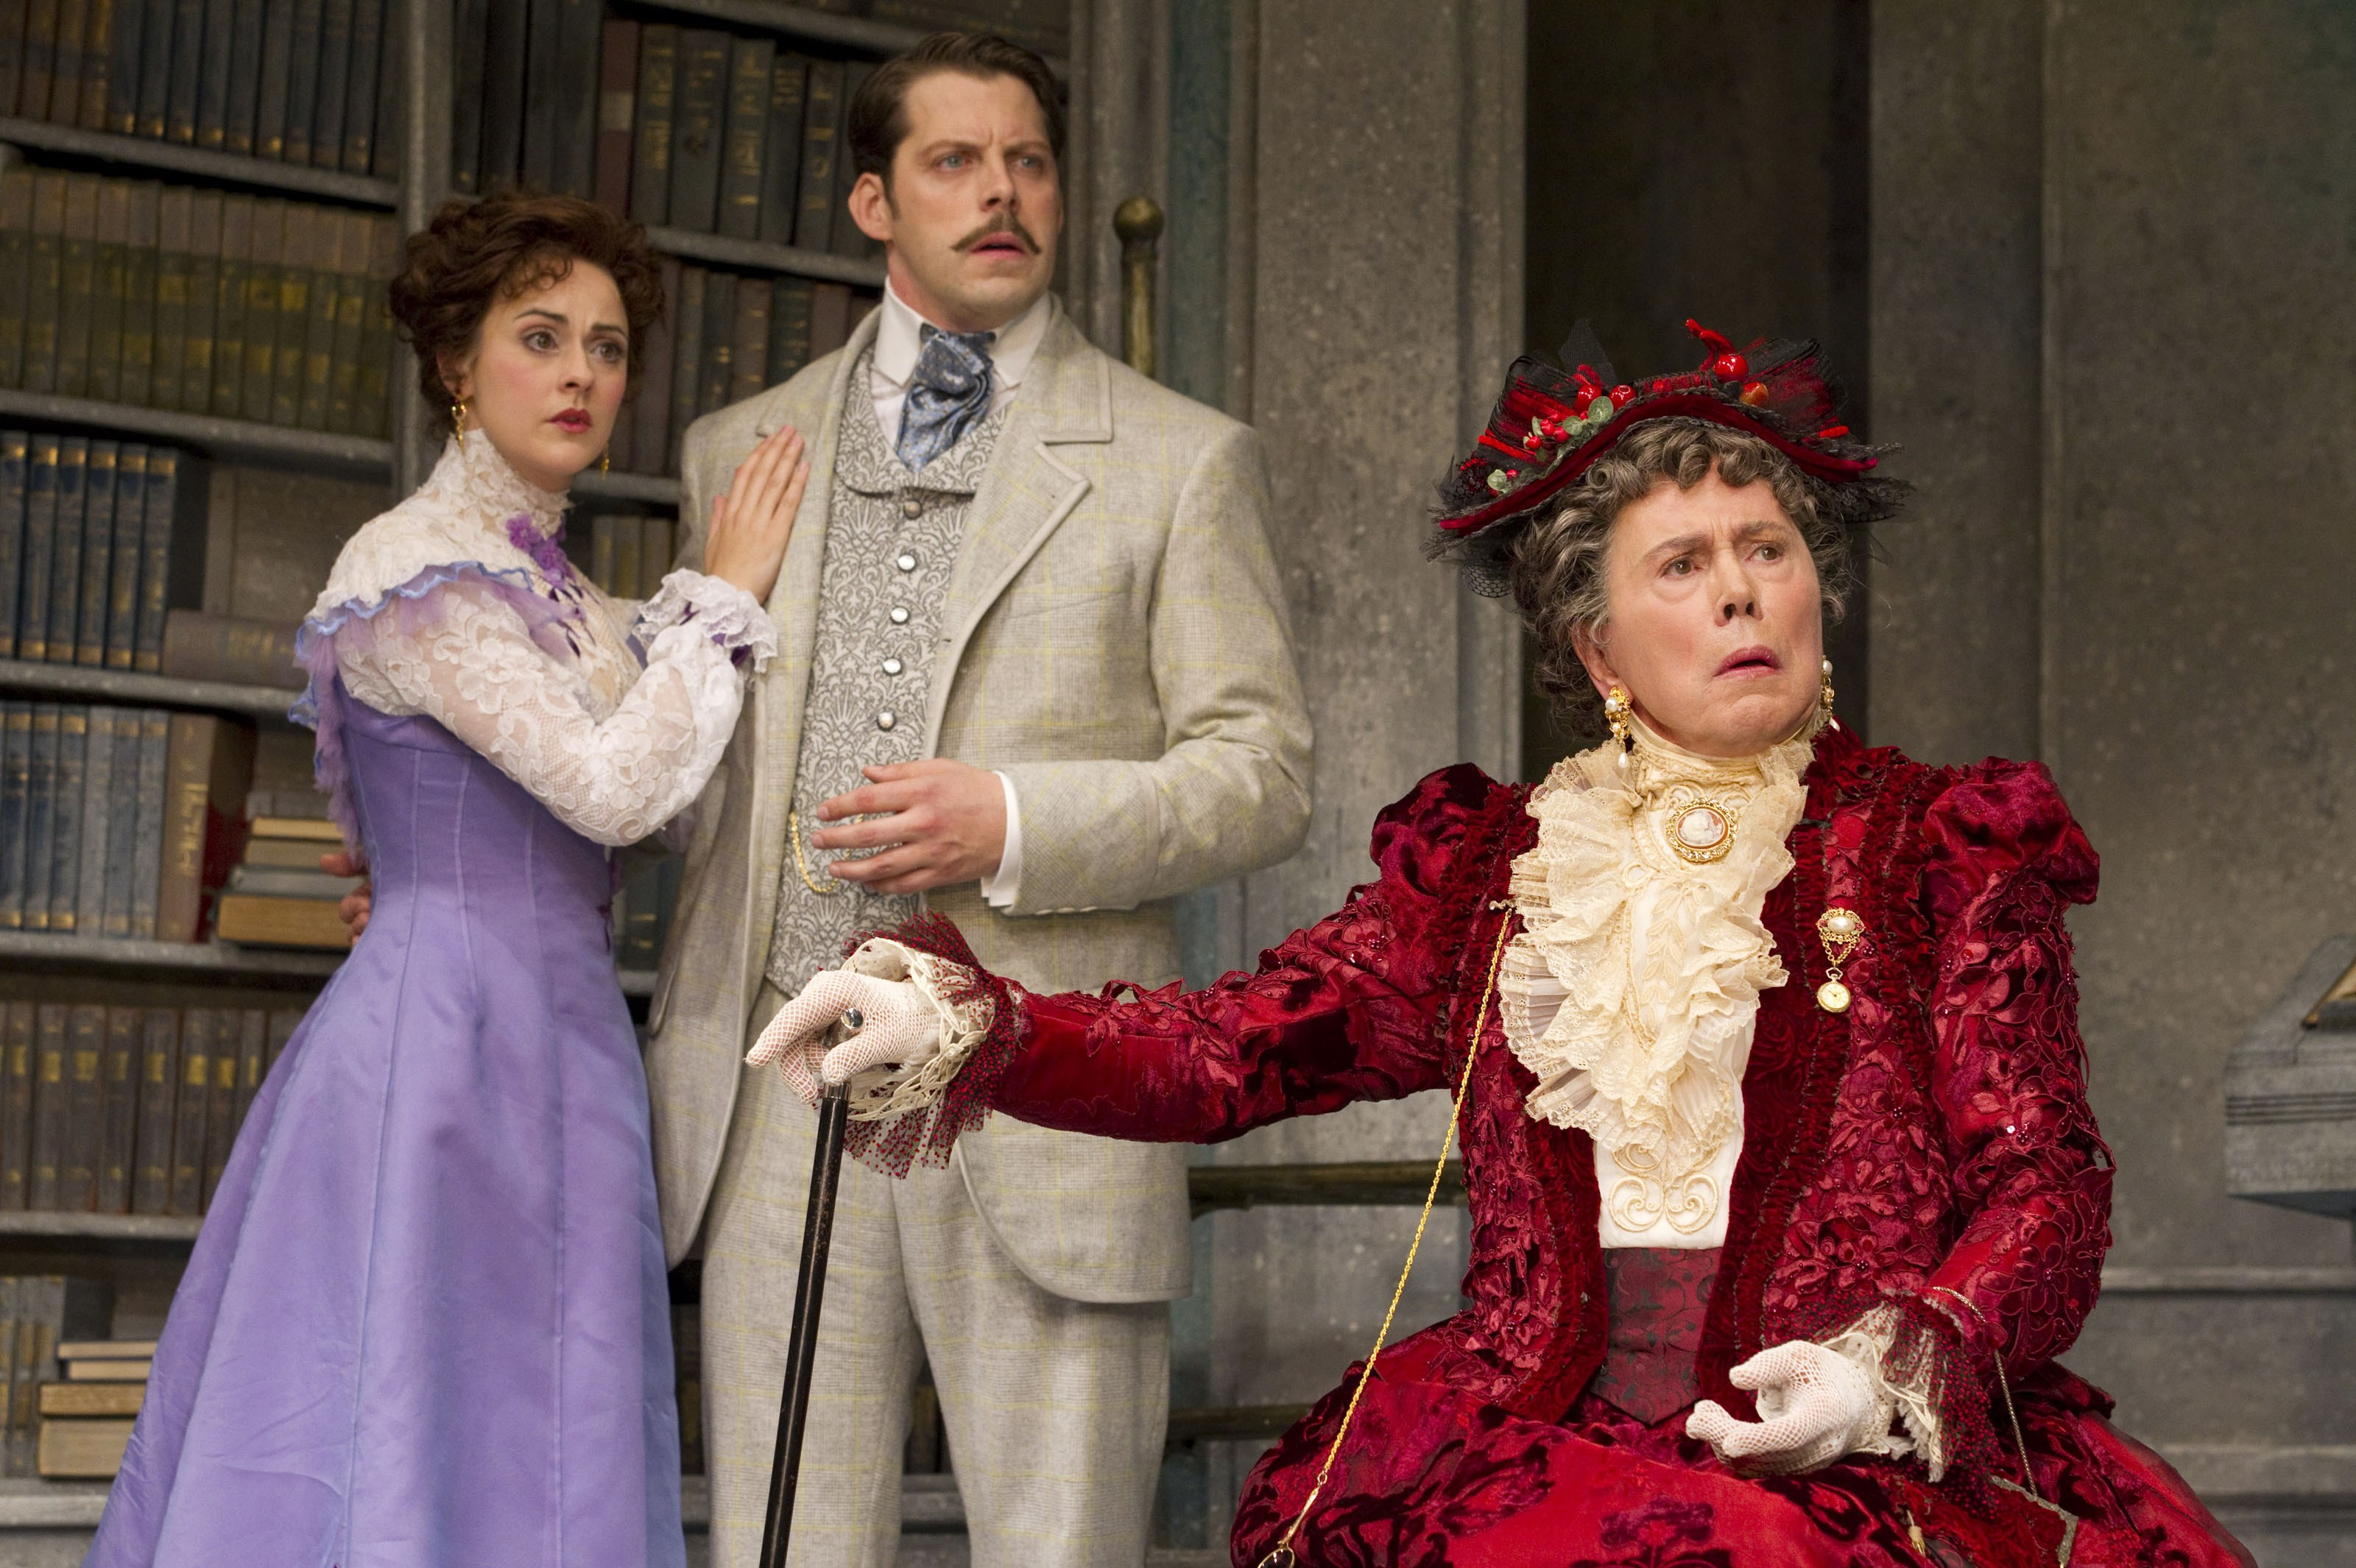 essays on marriage in the importance of being earnest 'in dramatic comedy women are typically presented in a less favourable way than men' to what extent do you agree with this view in relation to 'the importance of being earnest'.